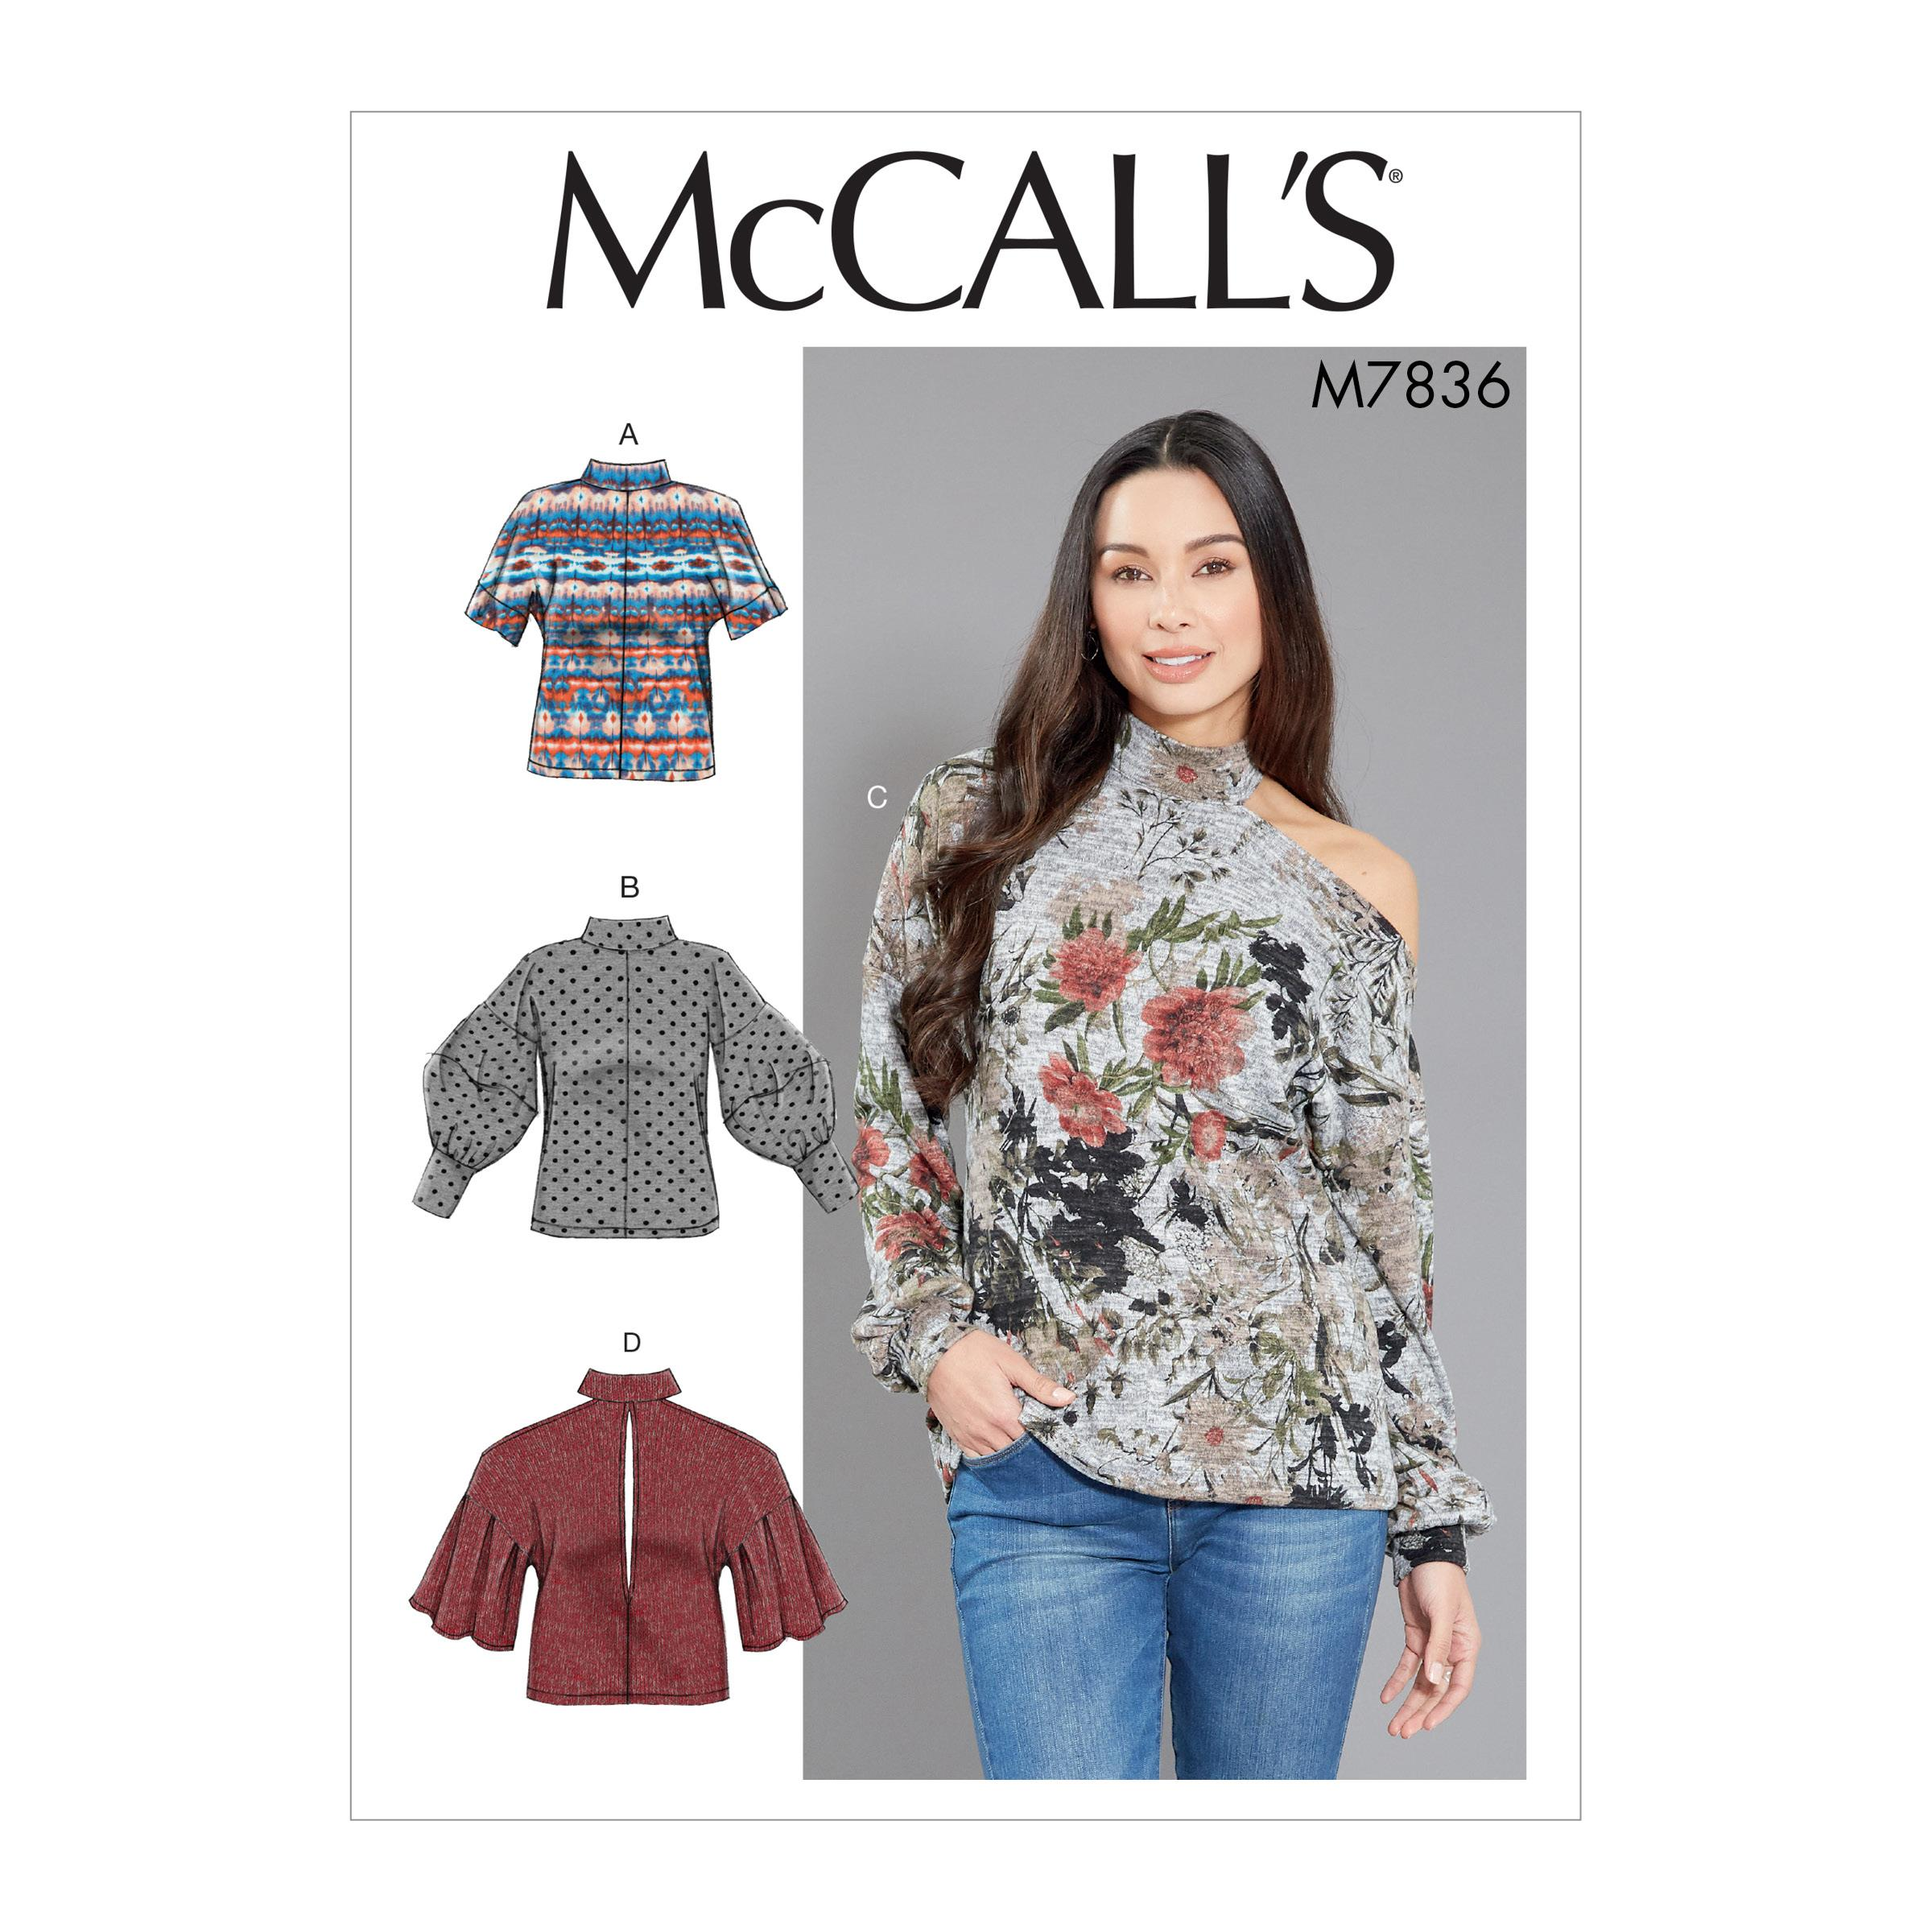 McCalls M7836 Misses Tops